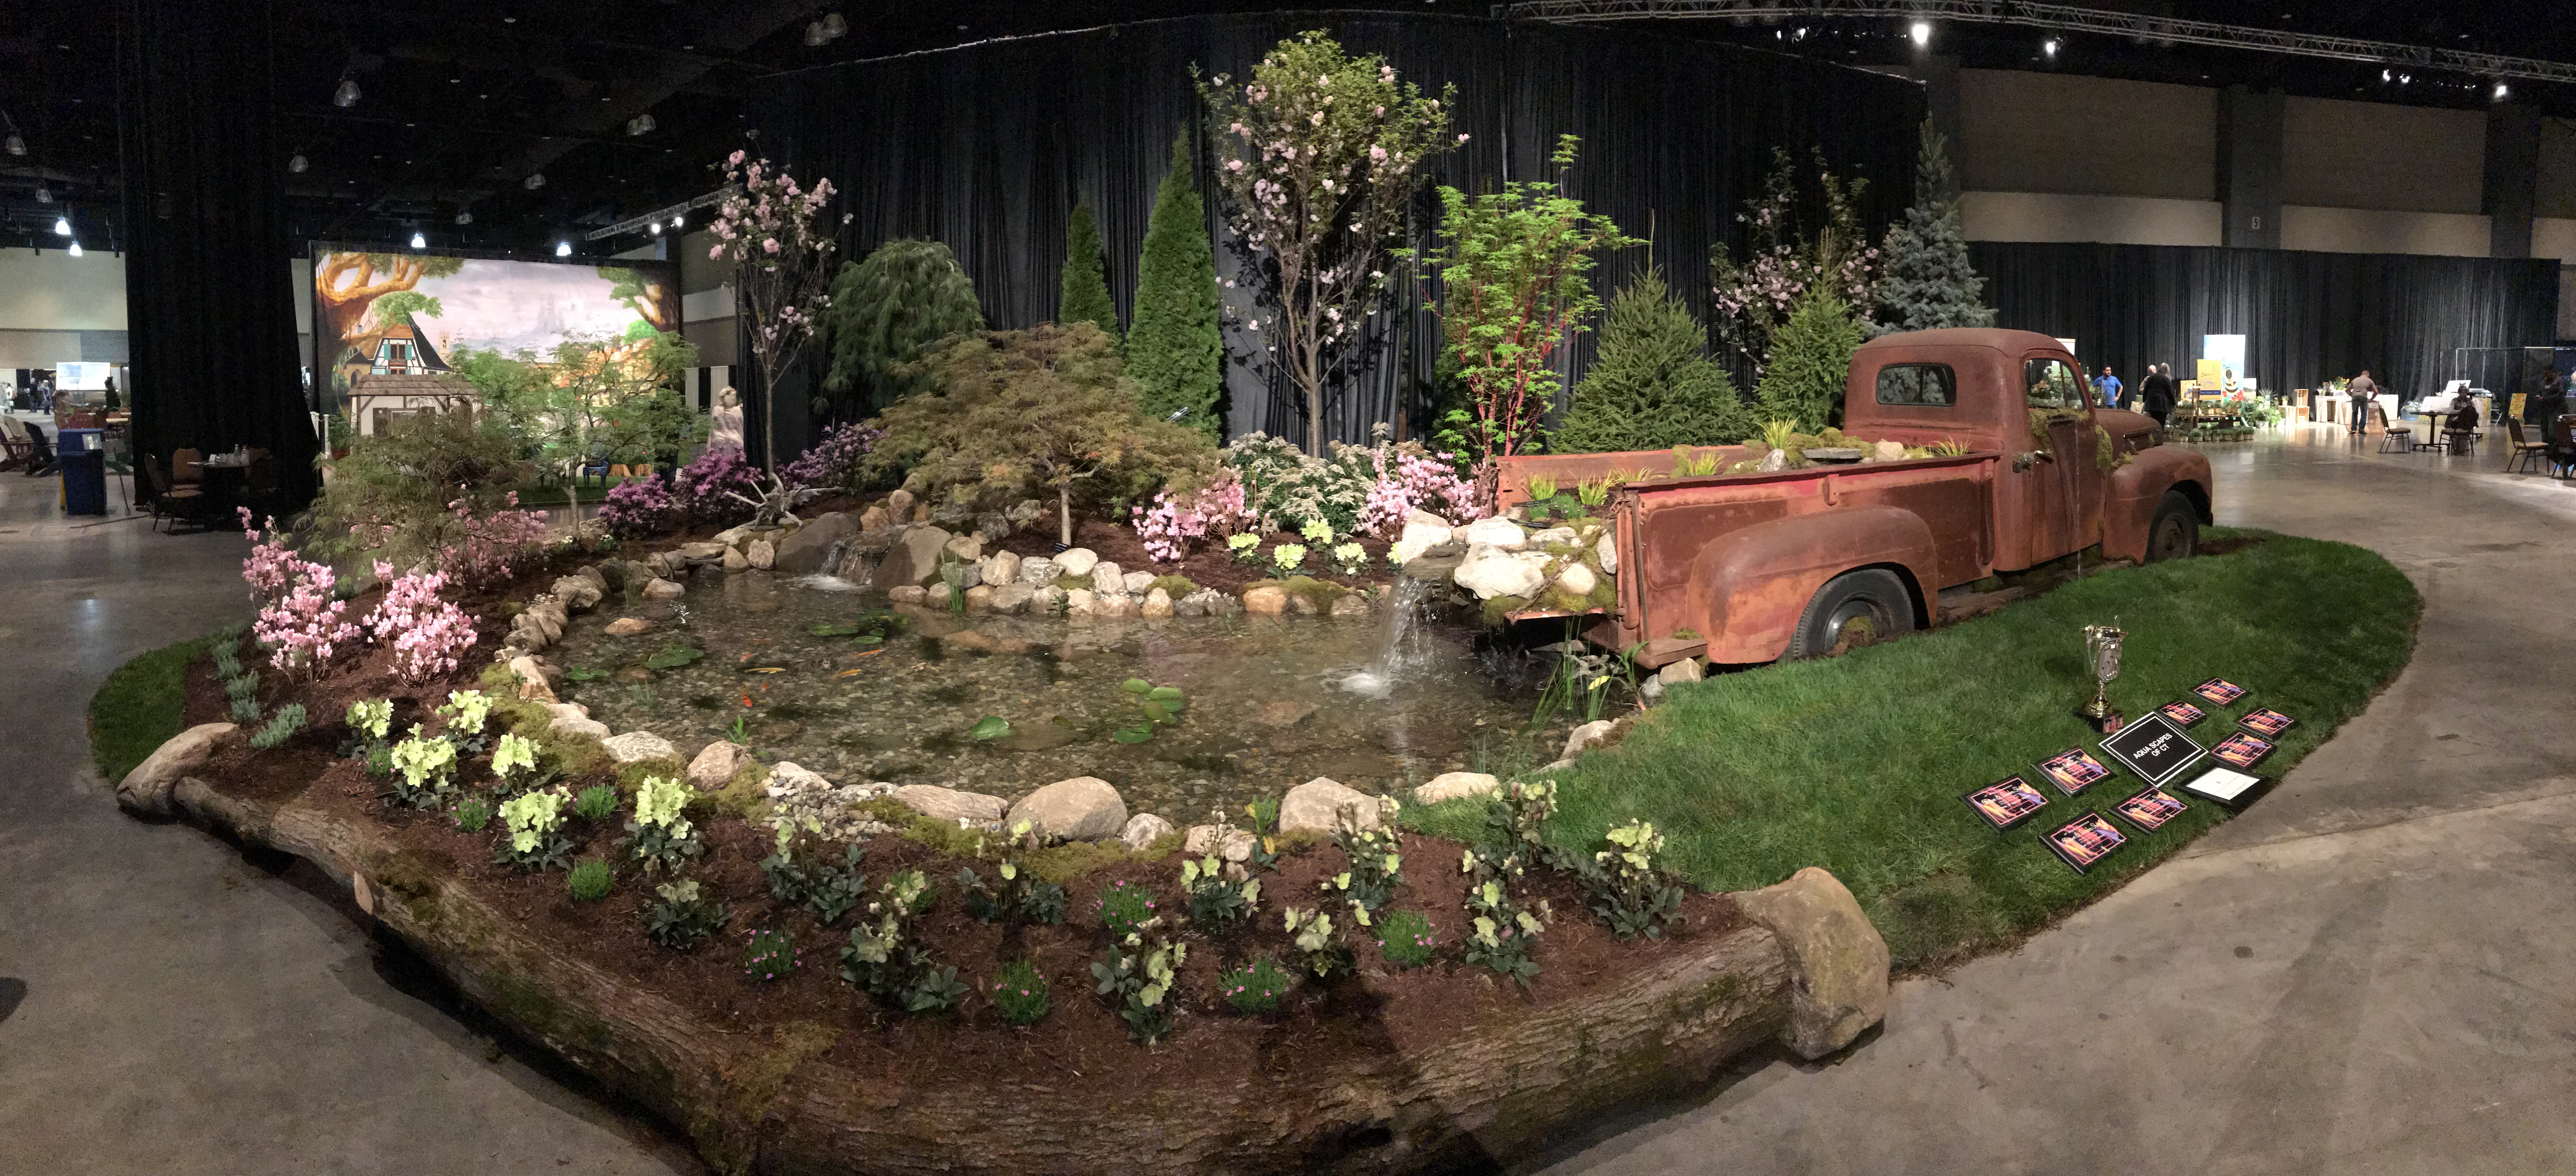 2018 Hartford Flower Show Results